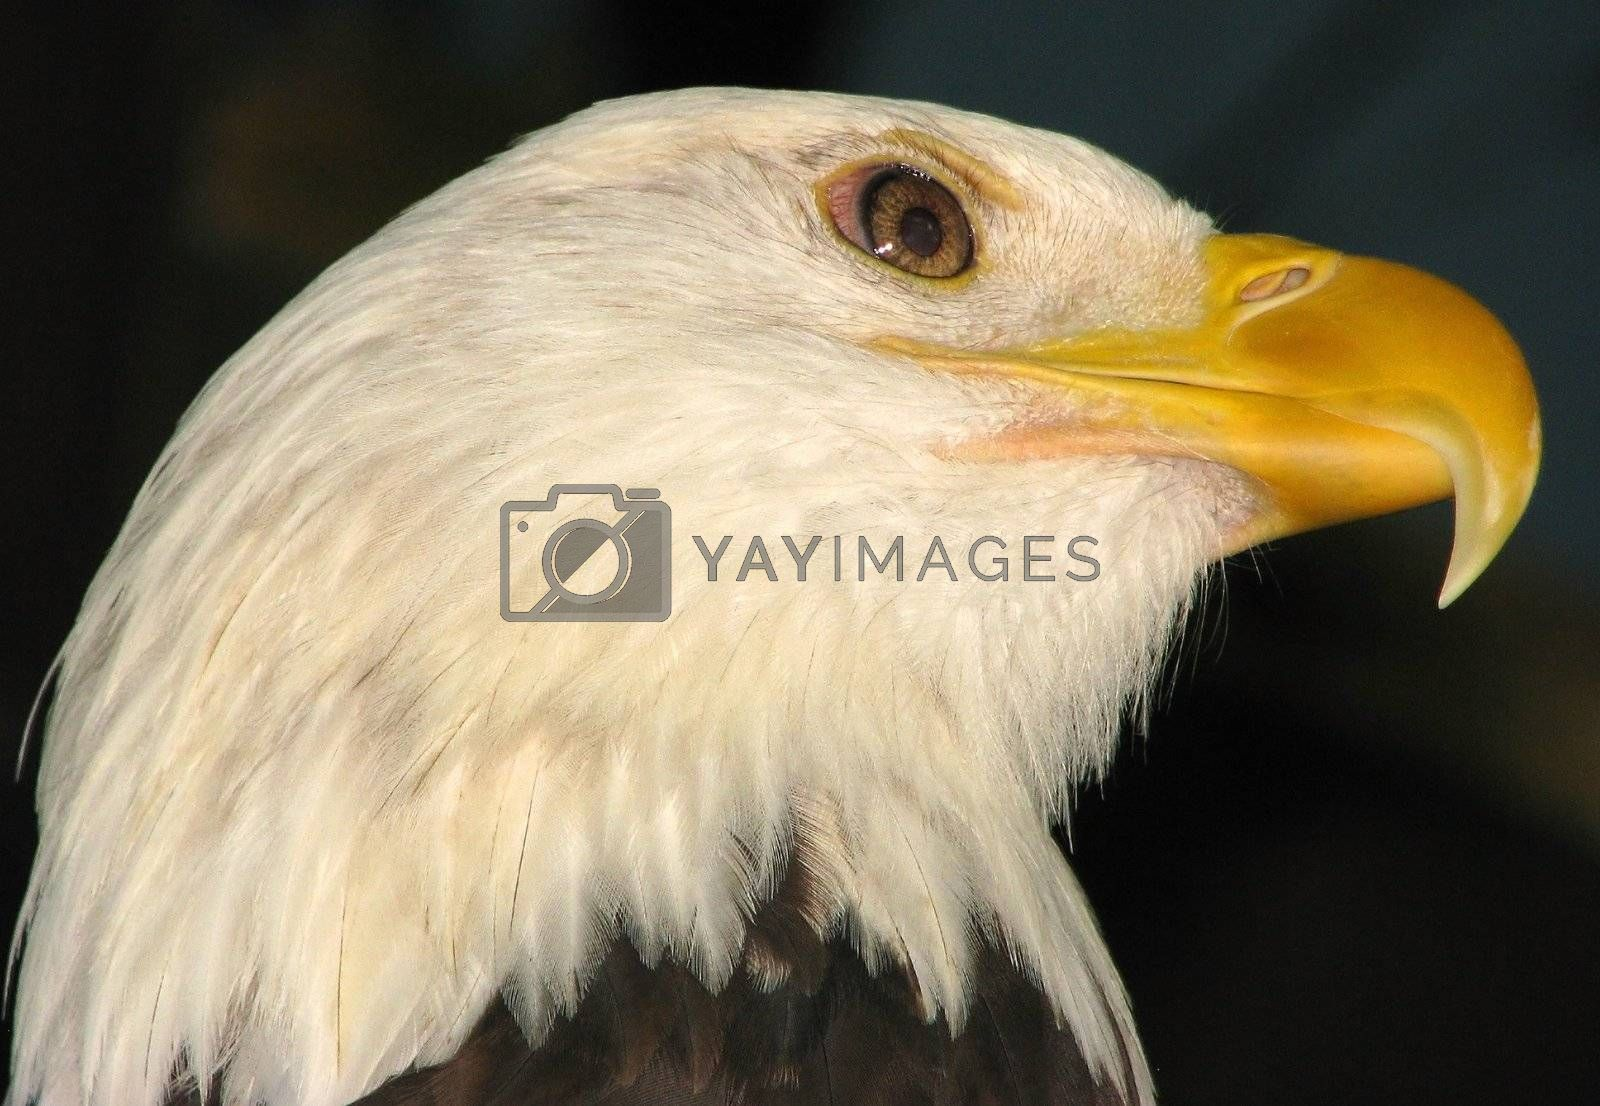 Royalty free image of Bald Eagle by bellafotosolo